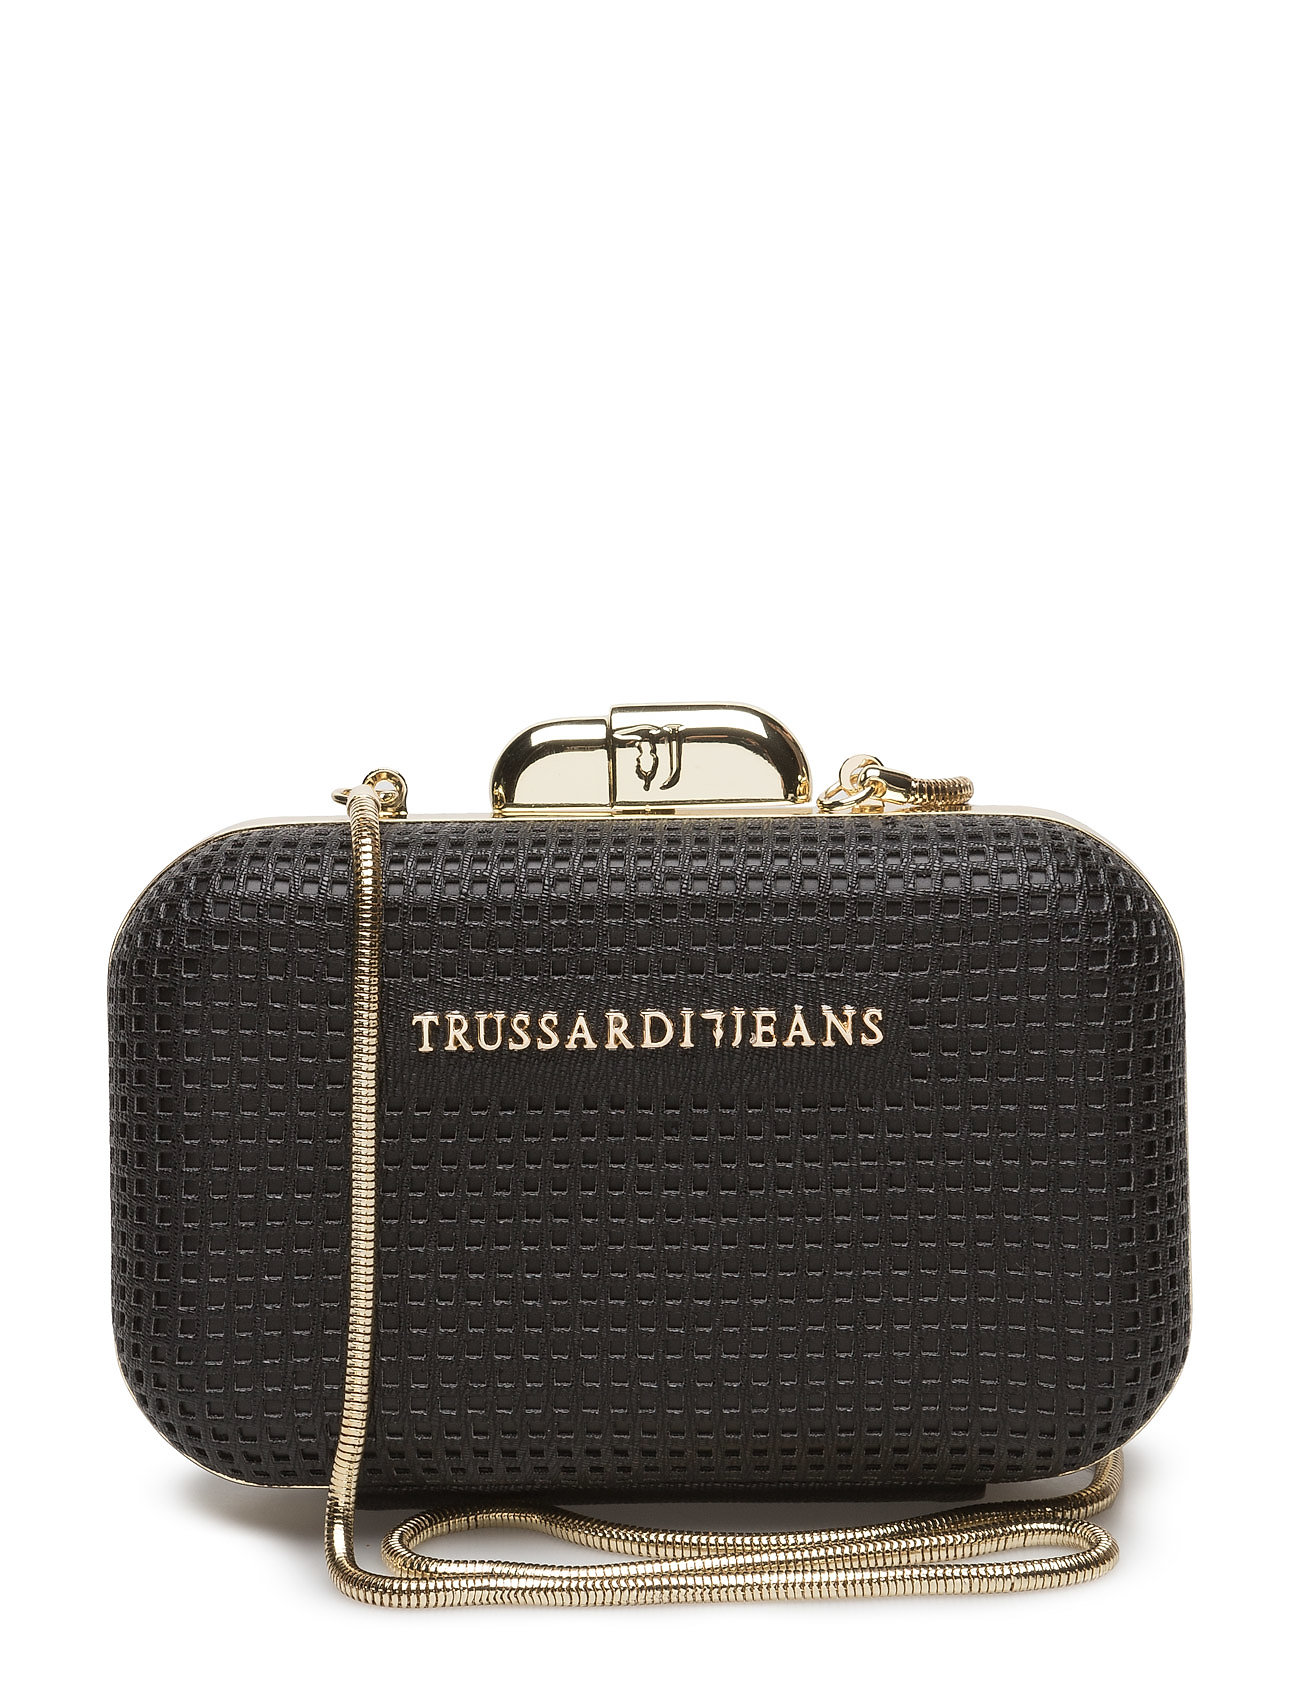 787c8b167cf7 Red Carpet Ecoleather Net Miniaudiere TRUSSARDI JEANS Små tasker til Damer  i Sort